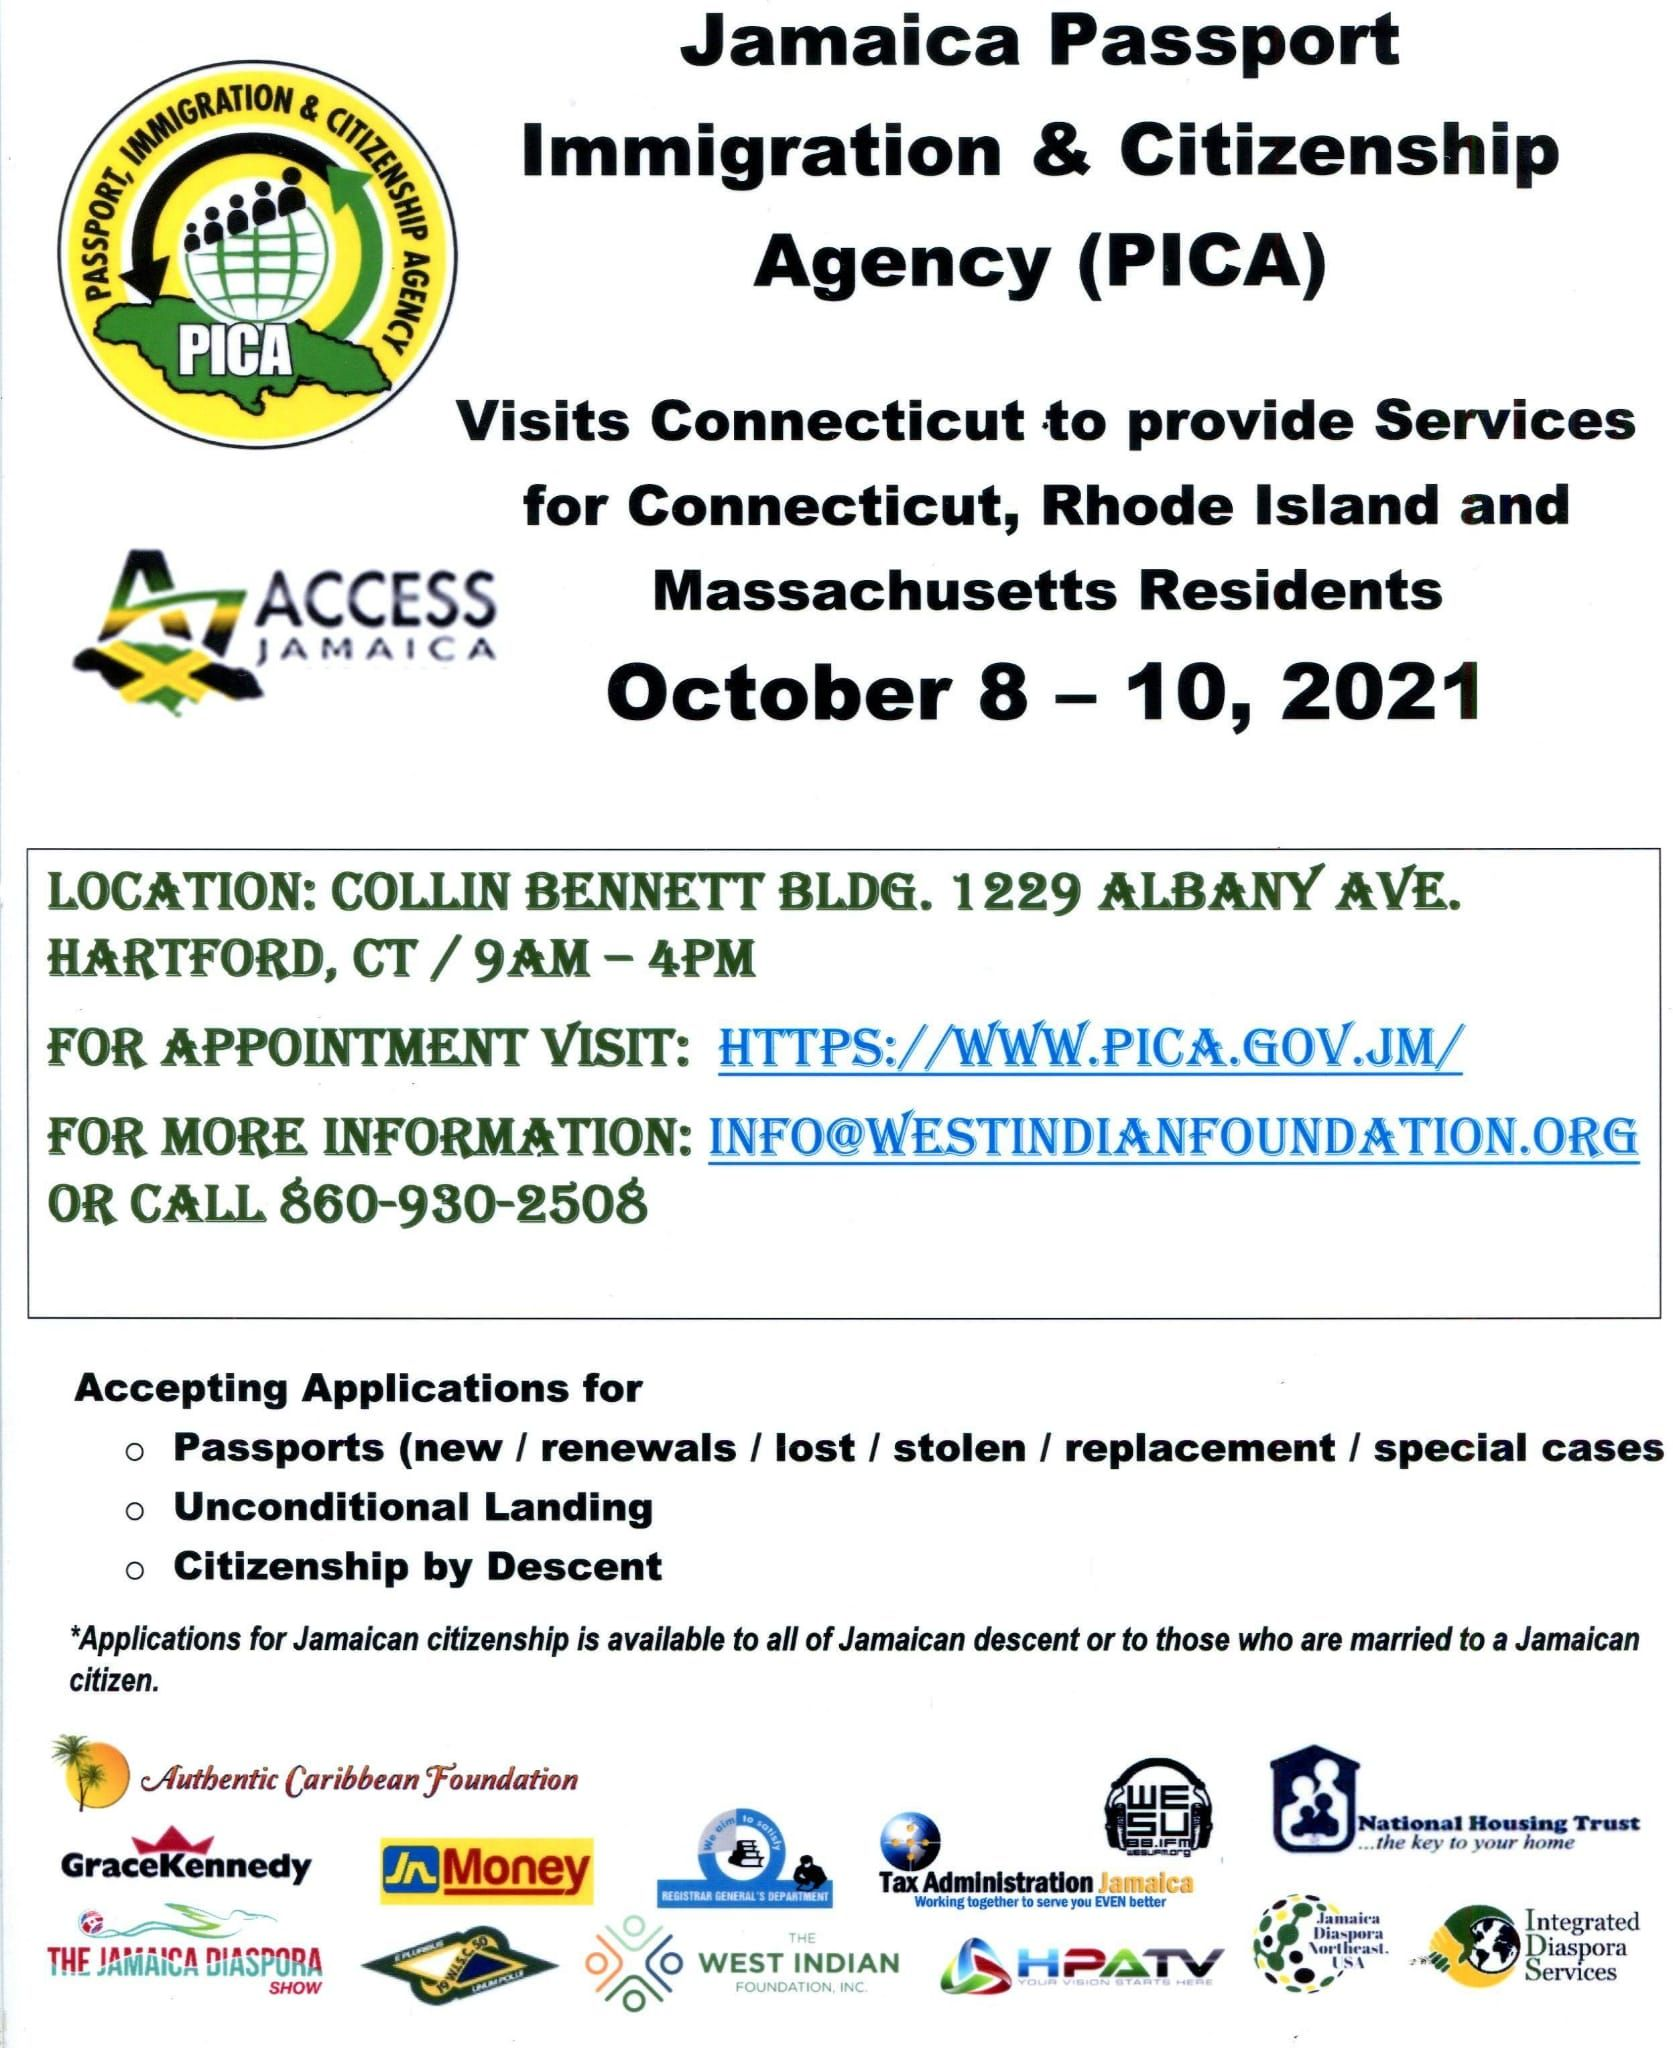 Time to Apply for Jamaican Passport - PICA Visits Hartford, Connecticut